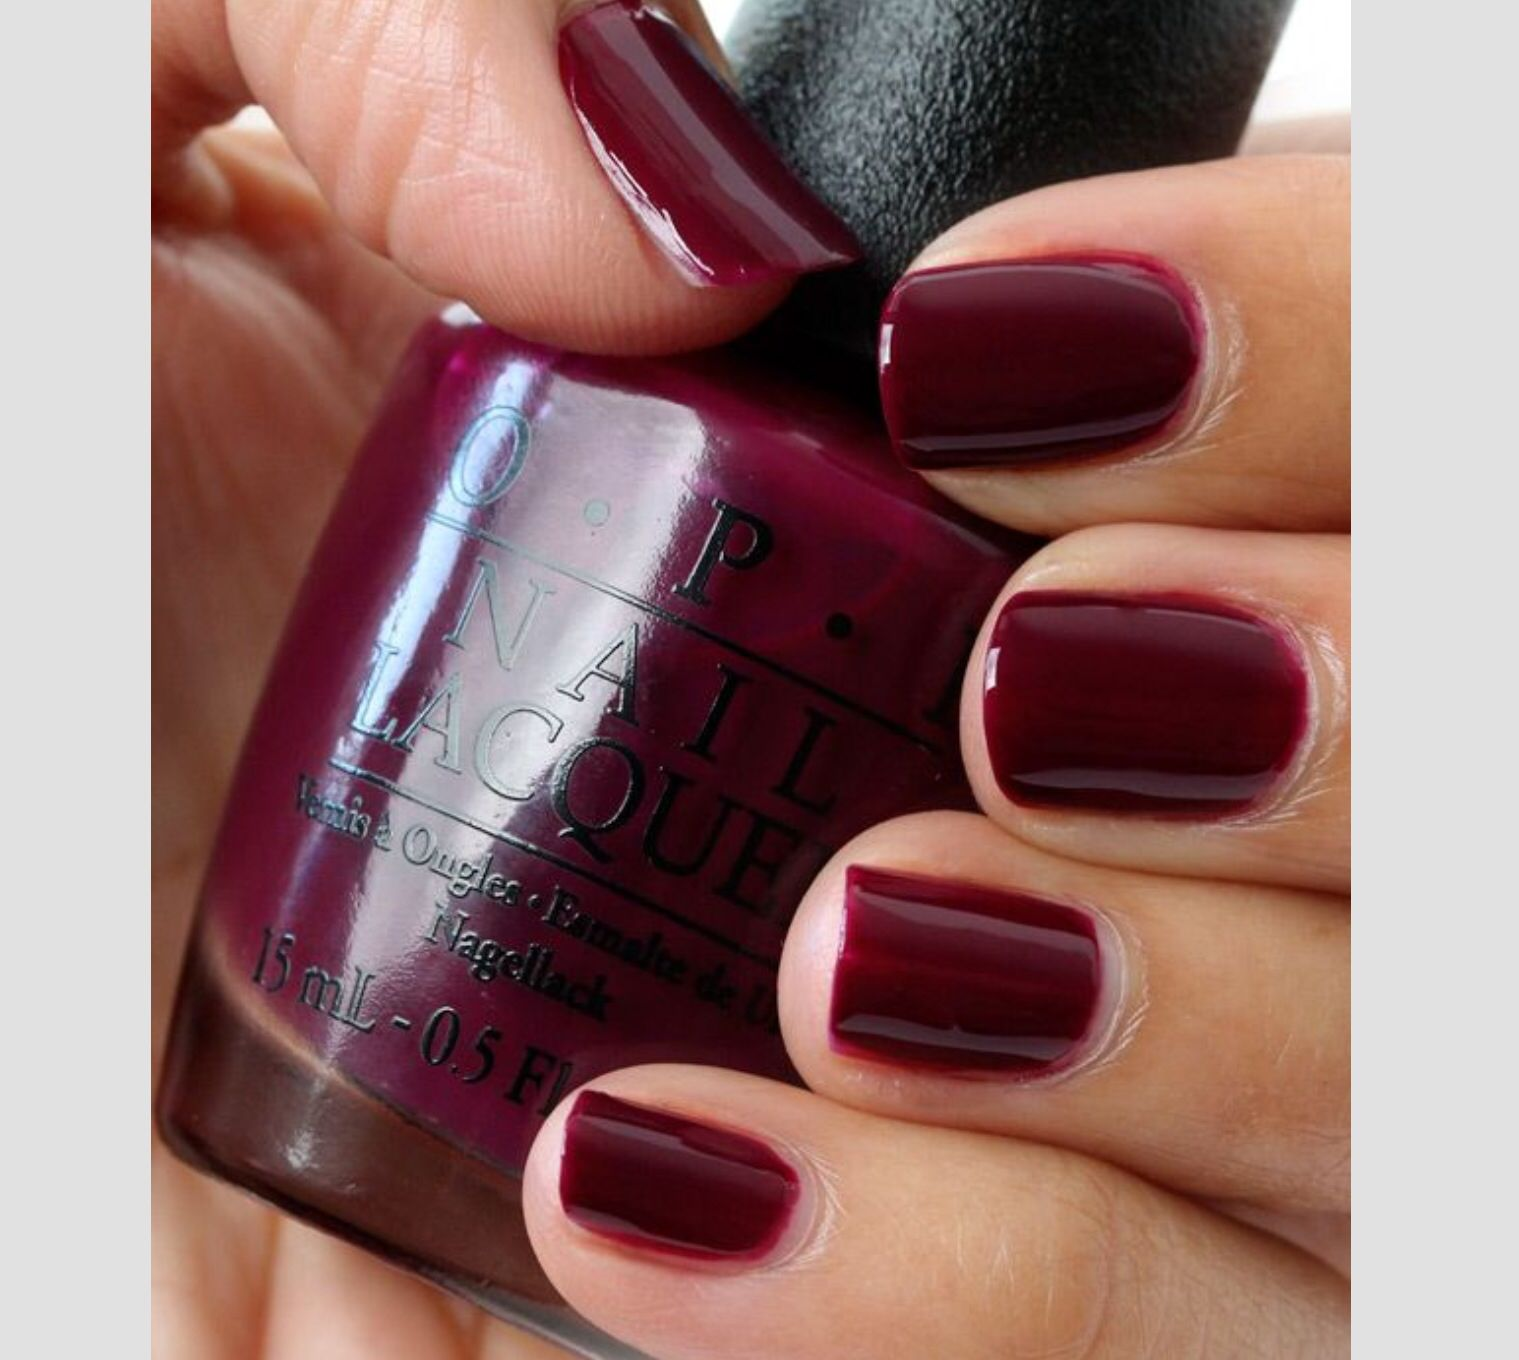 Pin by Susie Q on Nails   Pinterest   Work nails, Nail nail and Manicure